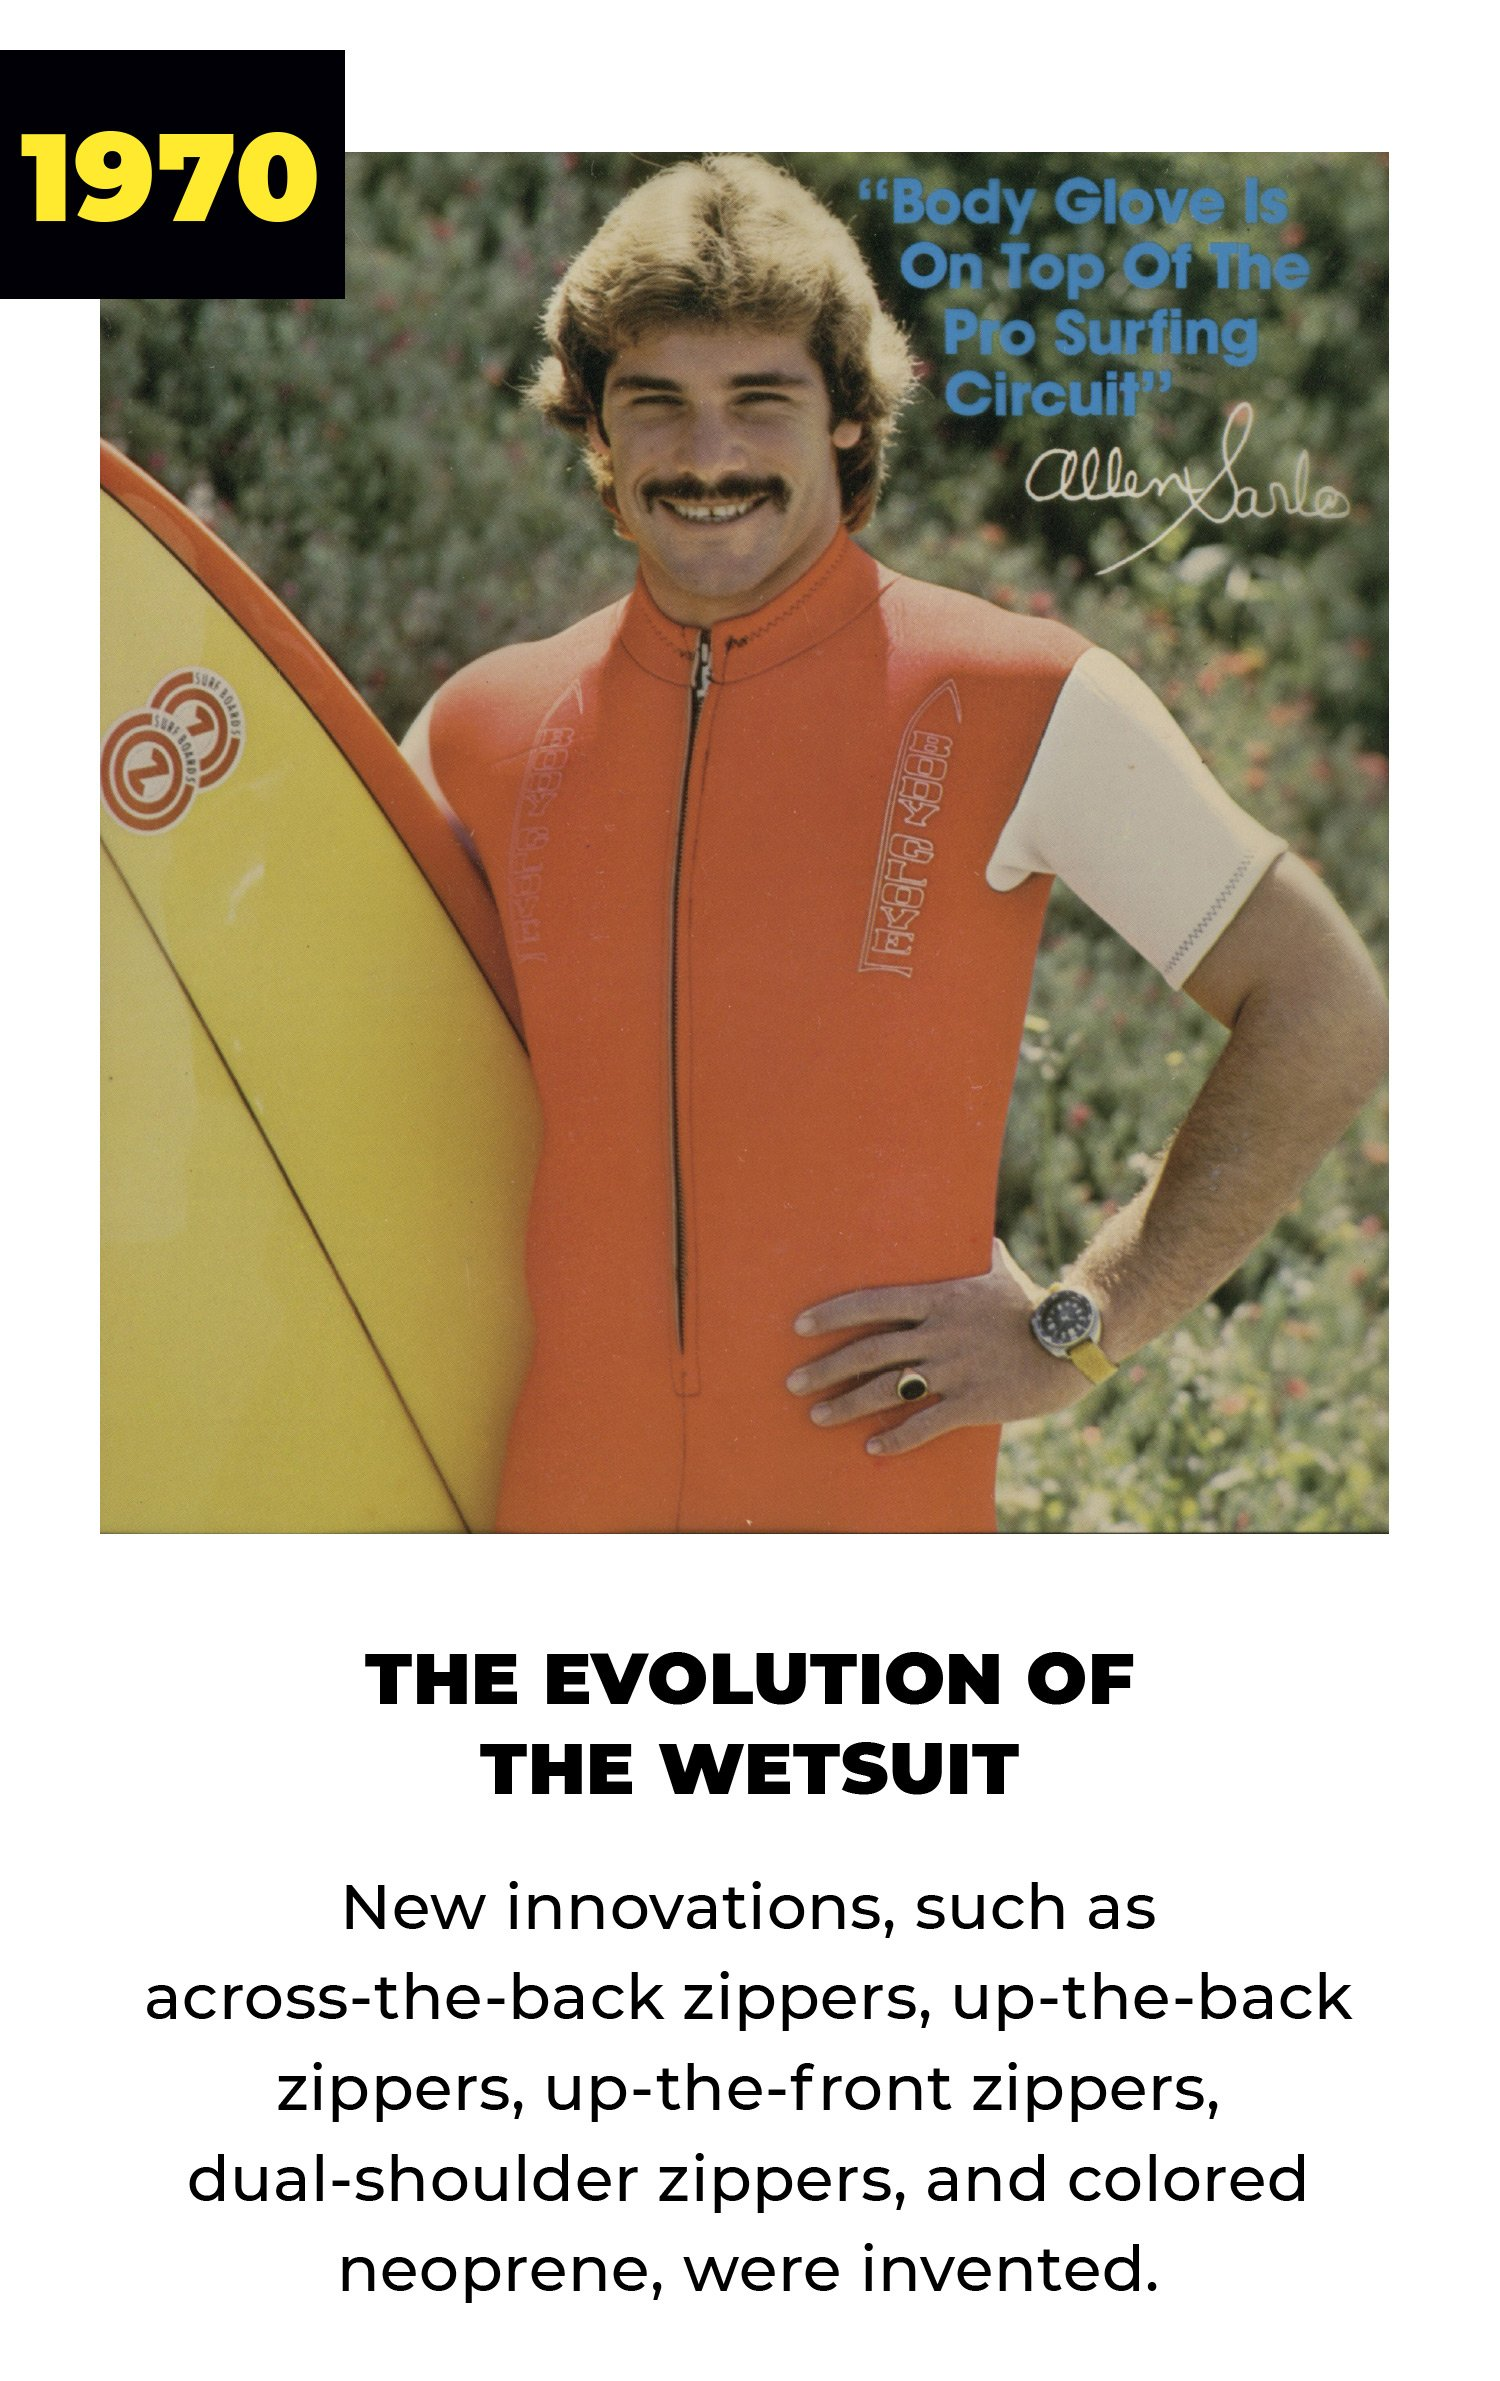 1970 | The Evolution of the Wetsuit | New innovations, such as across-the-back zippers, up-the-back zippers, dual-shoulder zippers, and colored neoprene, were invented.